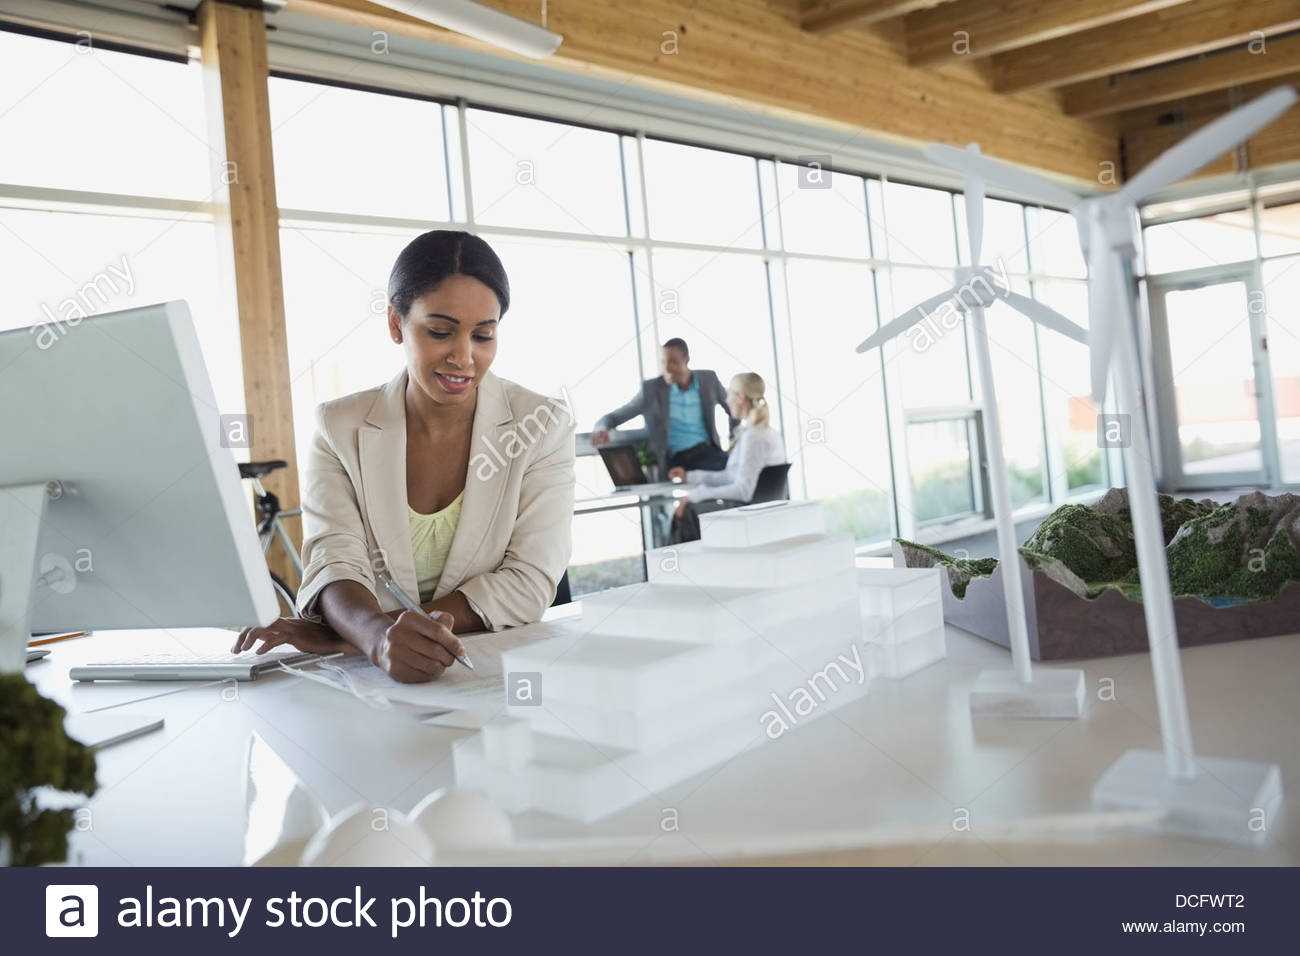 Sustainable energy engineer working on prototypes and blueprints - Stock Image